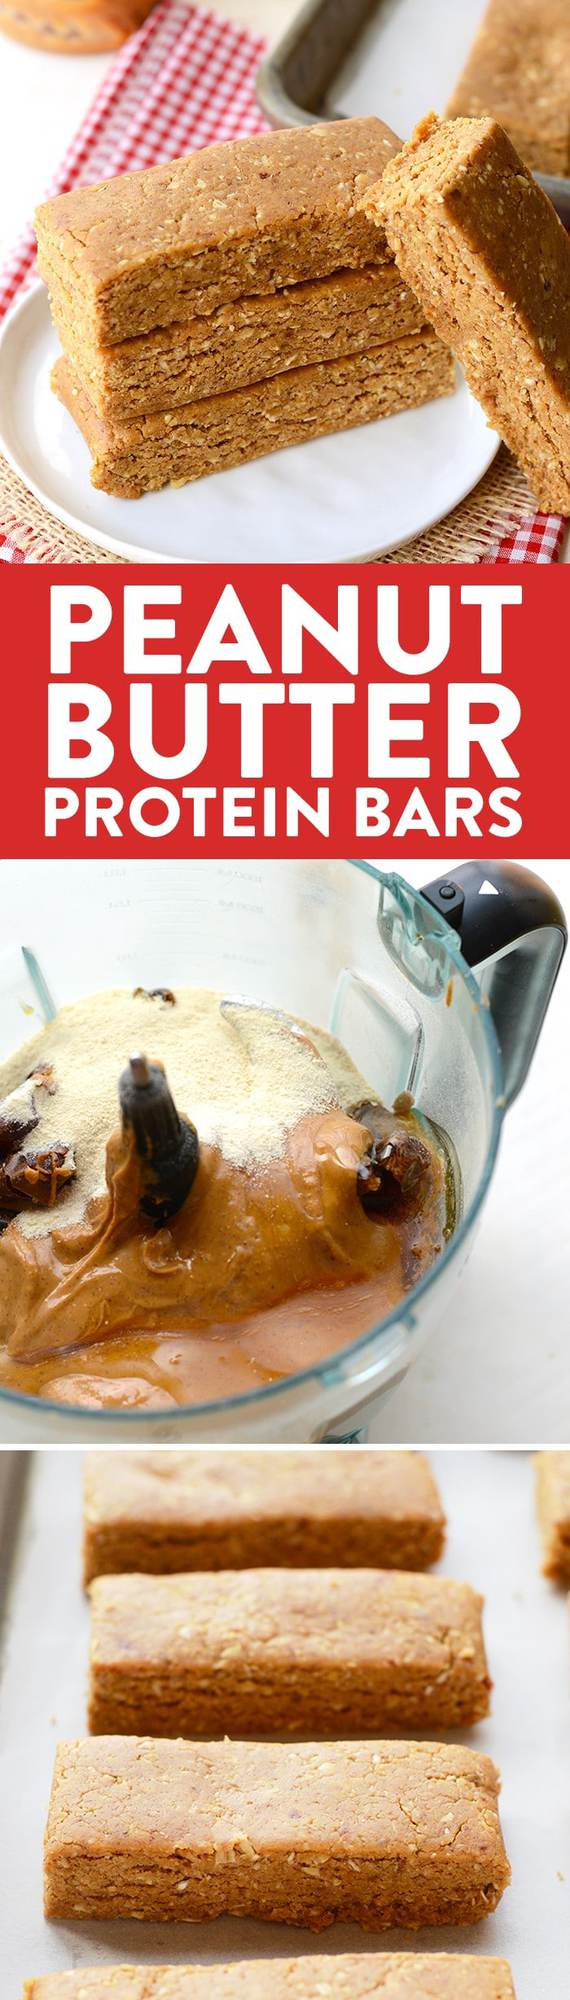 With just a few simple ingredients you can make peanut butter protein bars in your own kitchen with 13g protein in each bar!